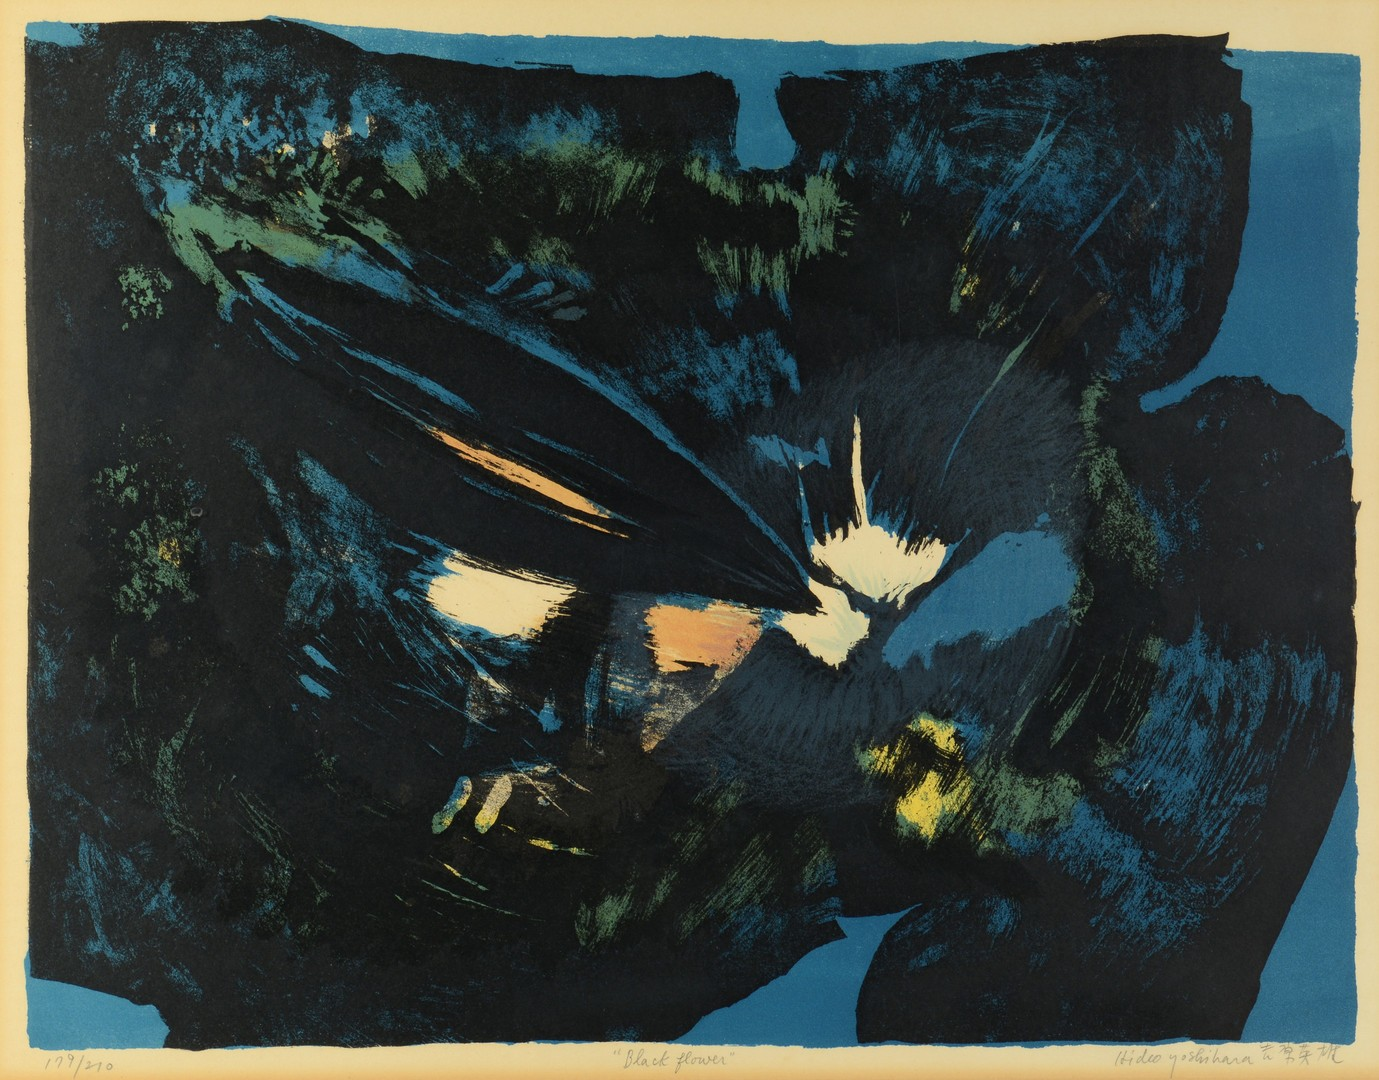 """Lot 3383242: Hideo Yoshihara Colored Lithograph, """"Black Flower"""""""